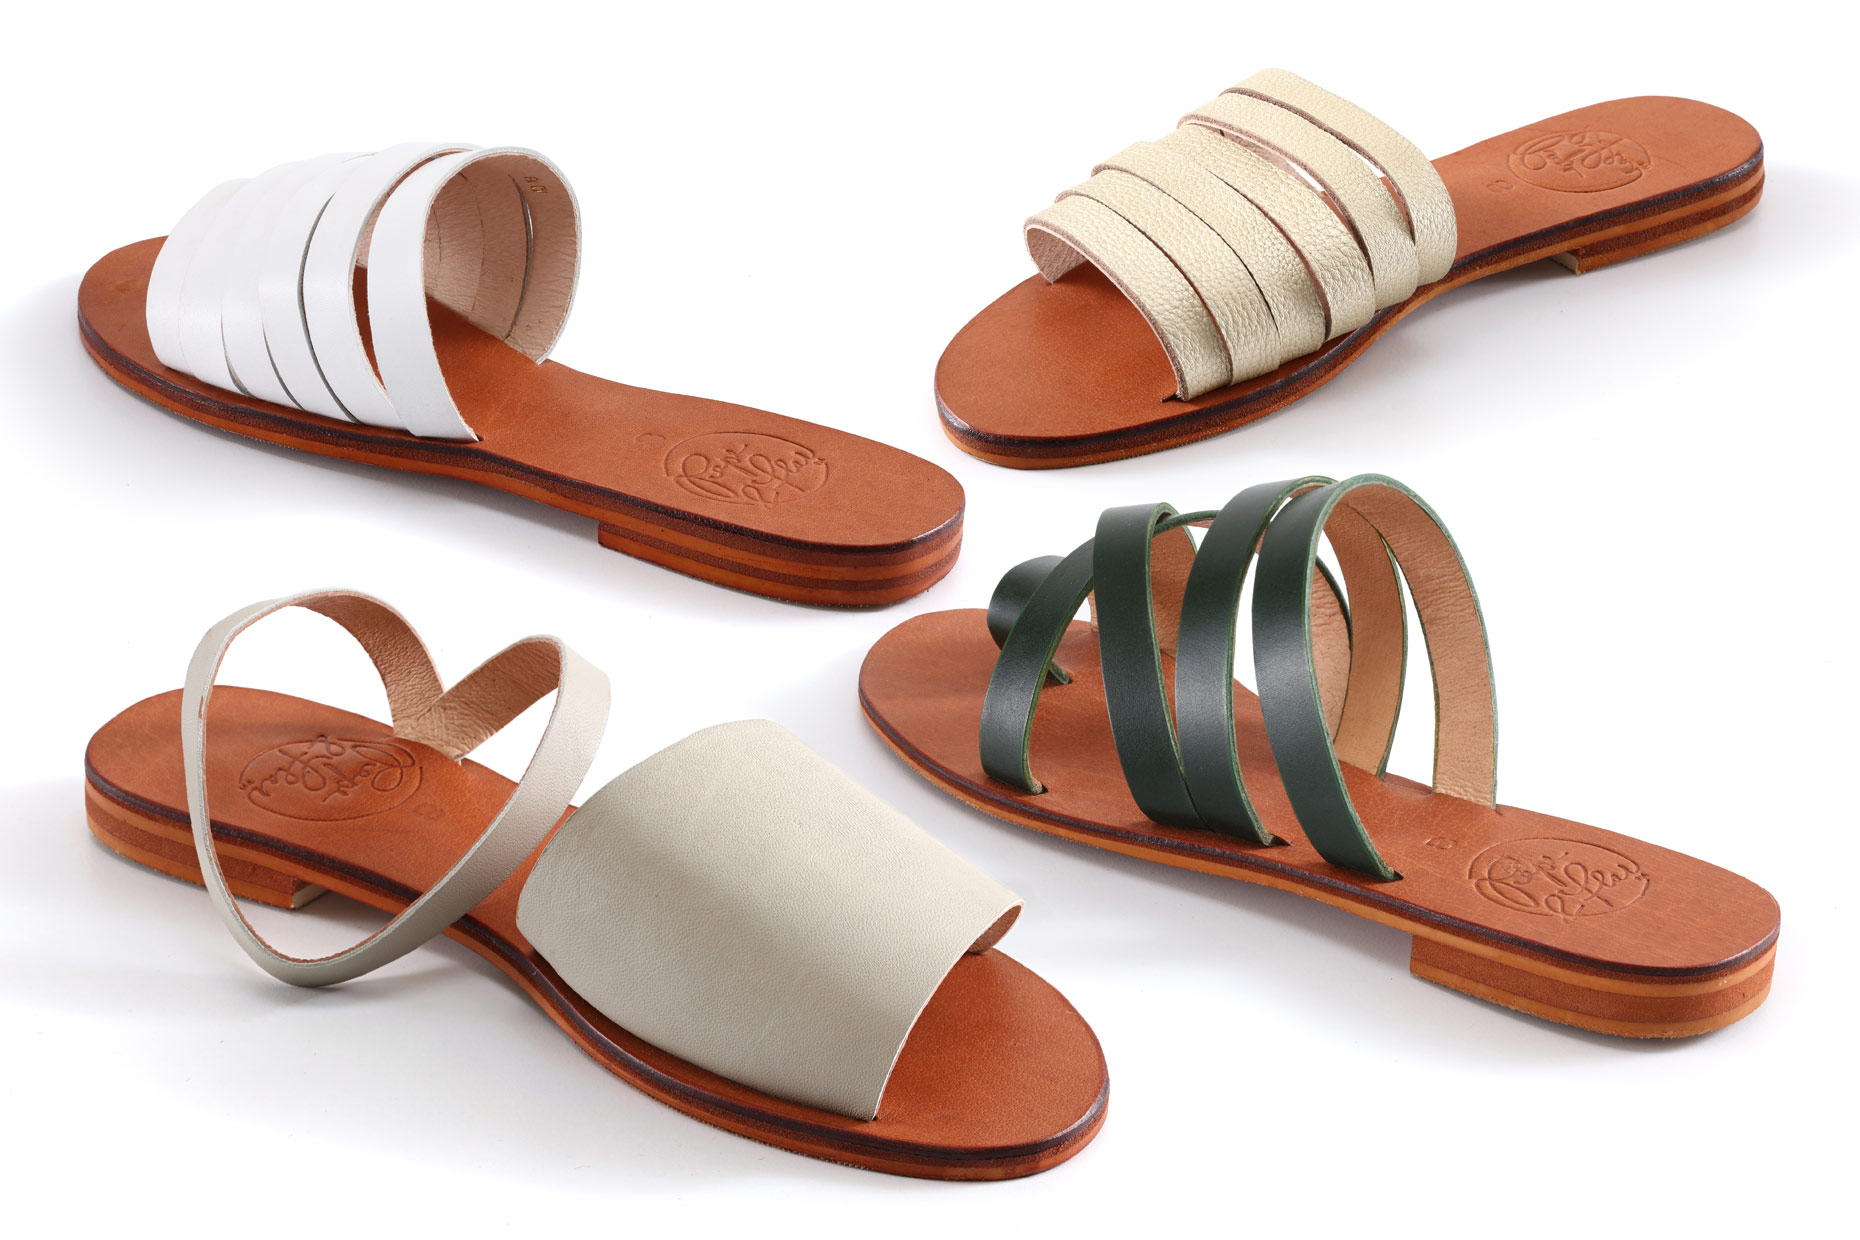 sandals-group-3